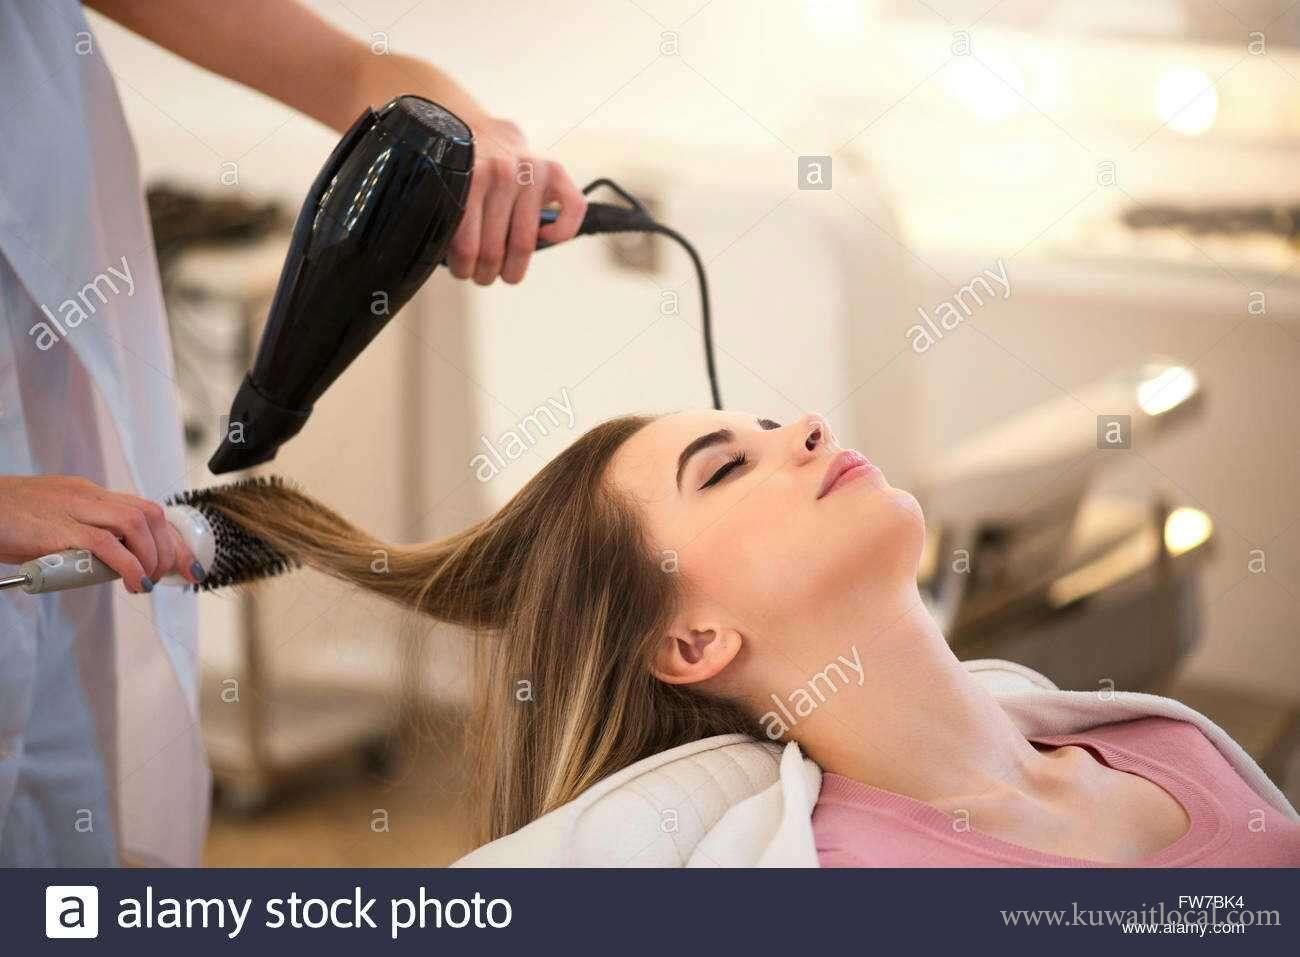 Ladies-saloon-3-kuwait